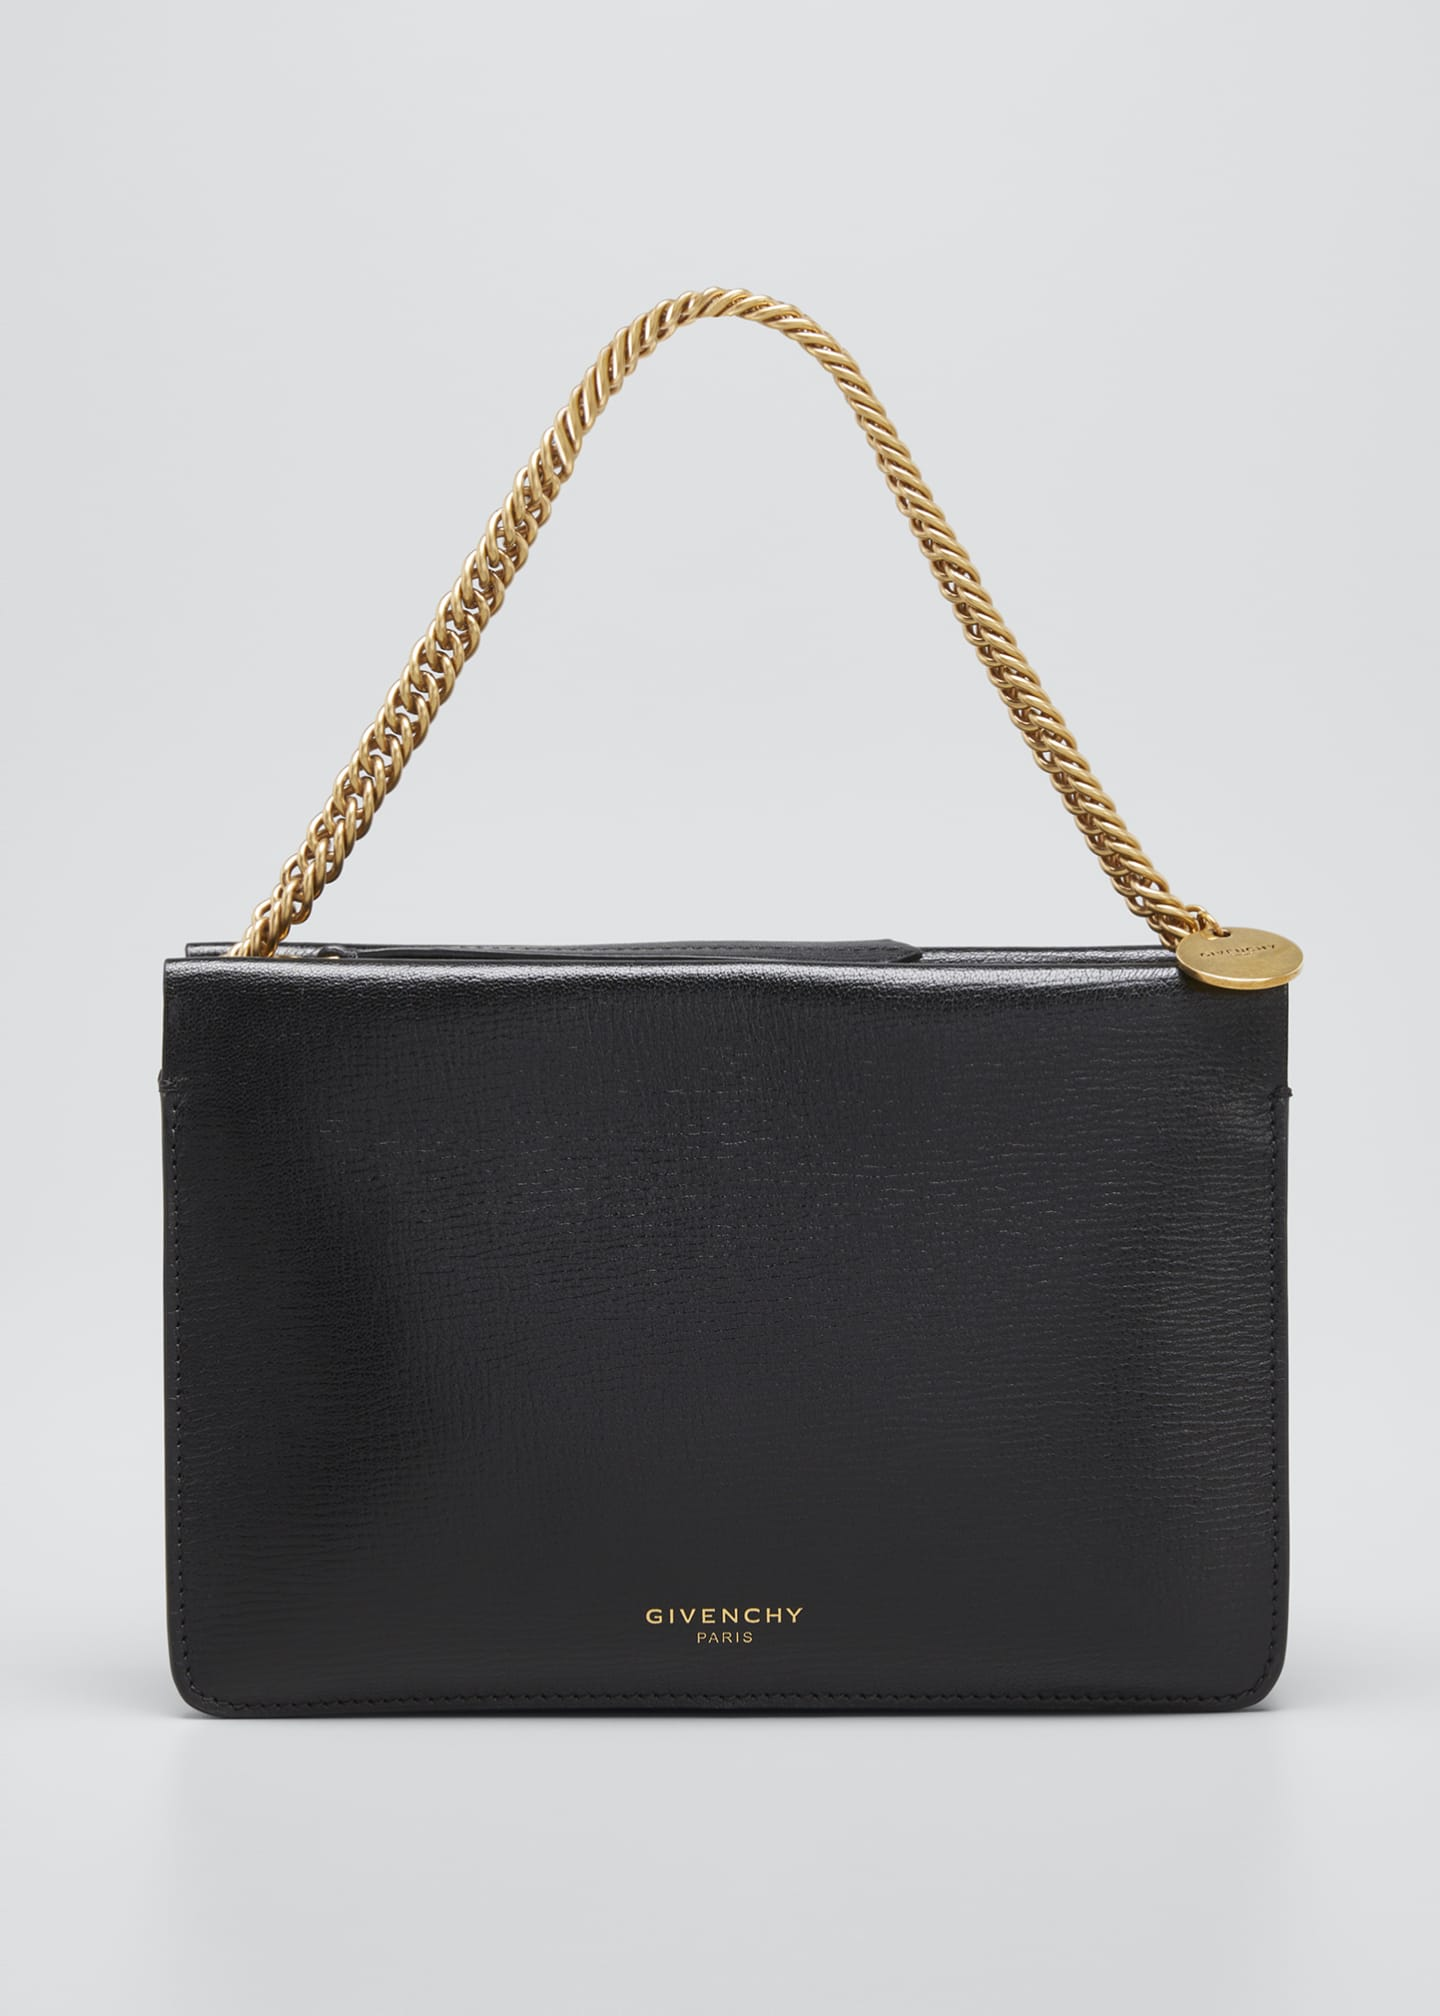 Givenchy Cross Small Leather Crossbody Bag